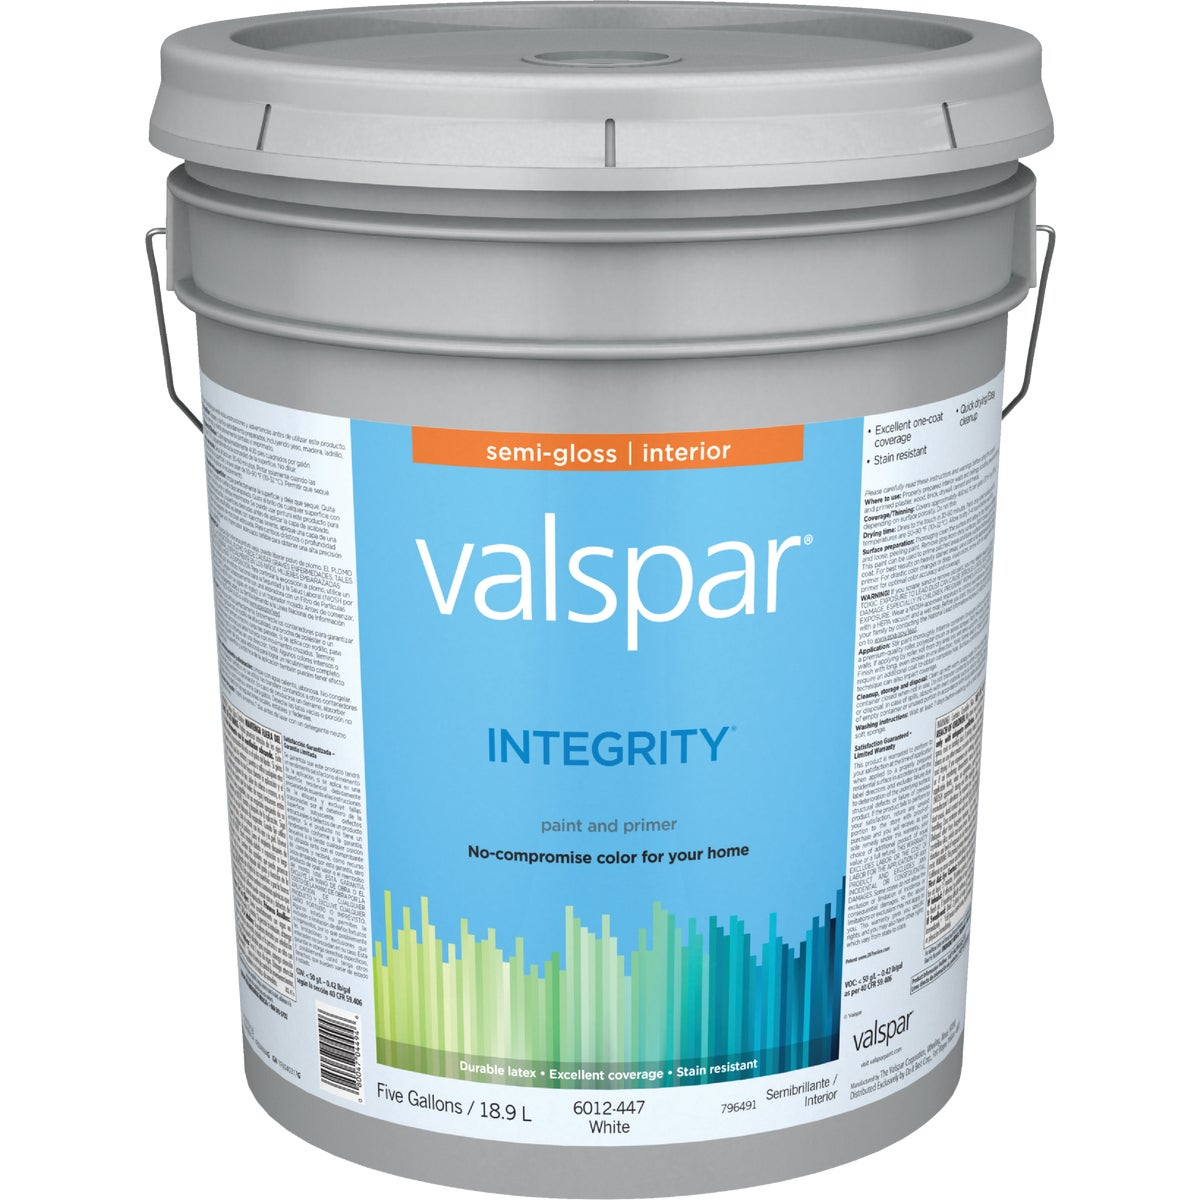 INT S/G WHITE PAINT - 004.6012447.008 by Valspar Corp